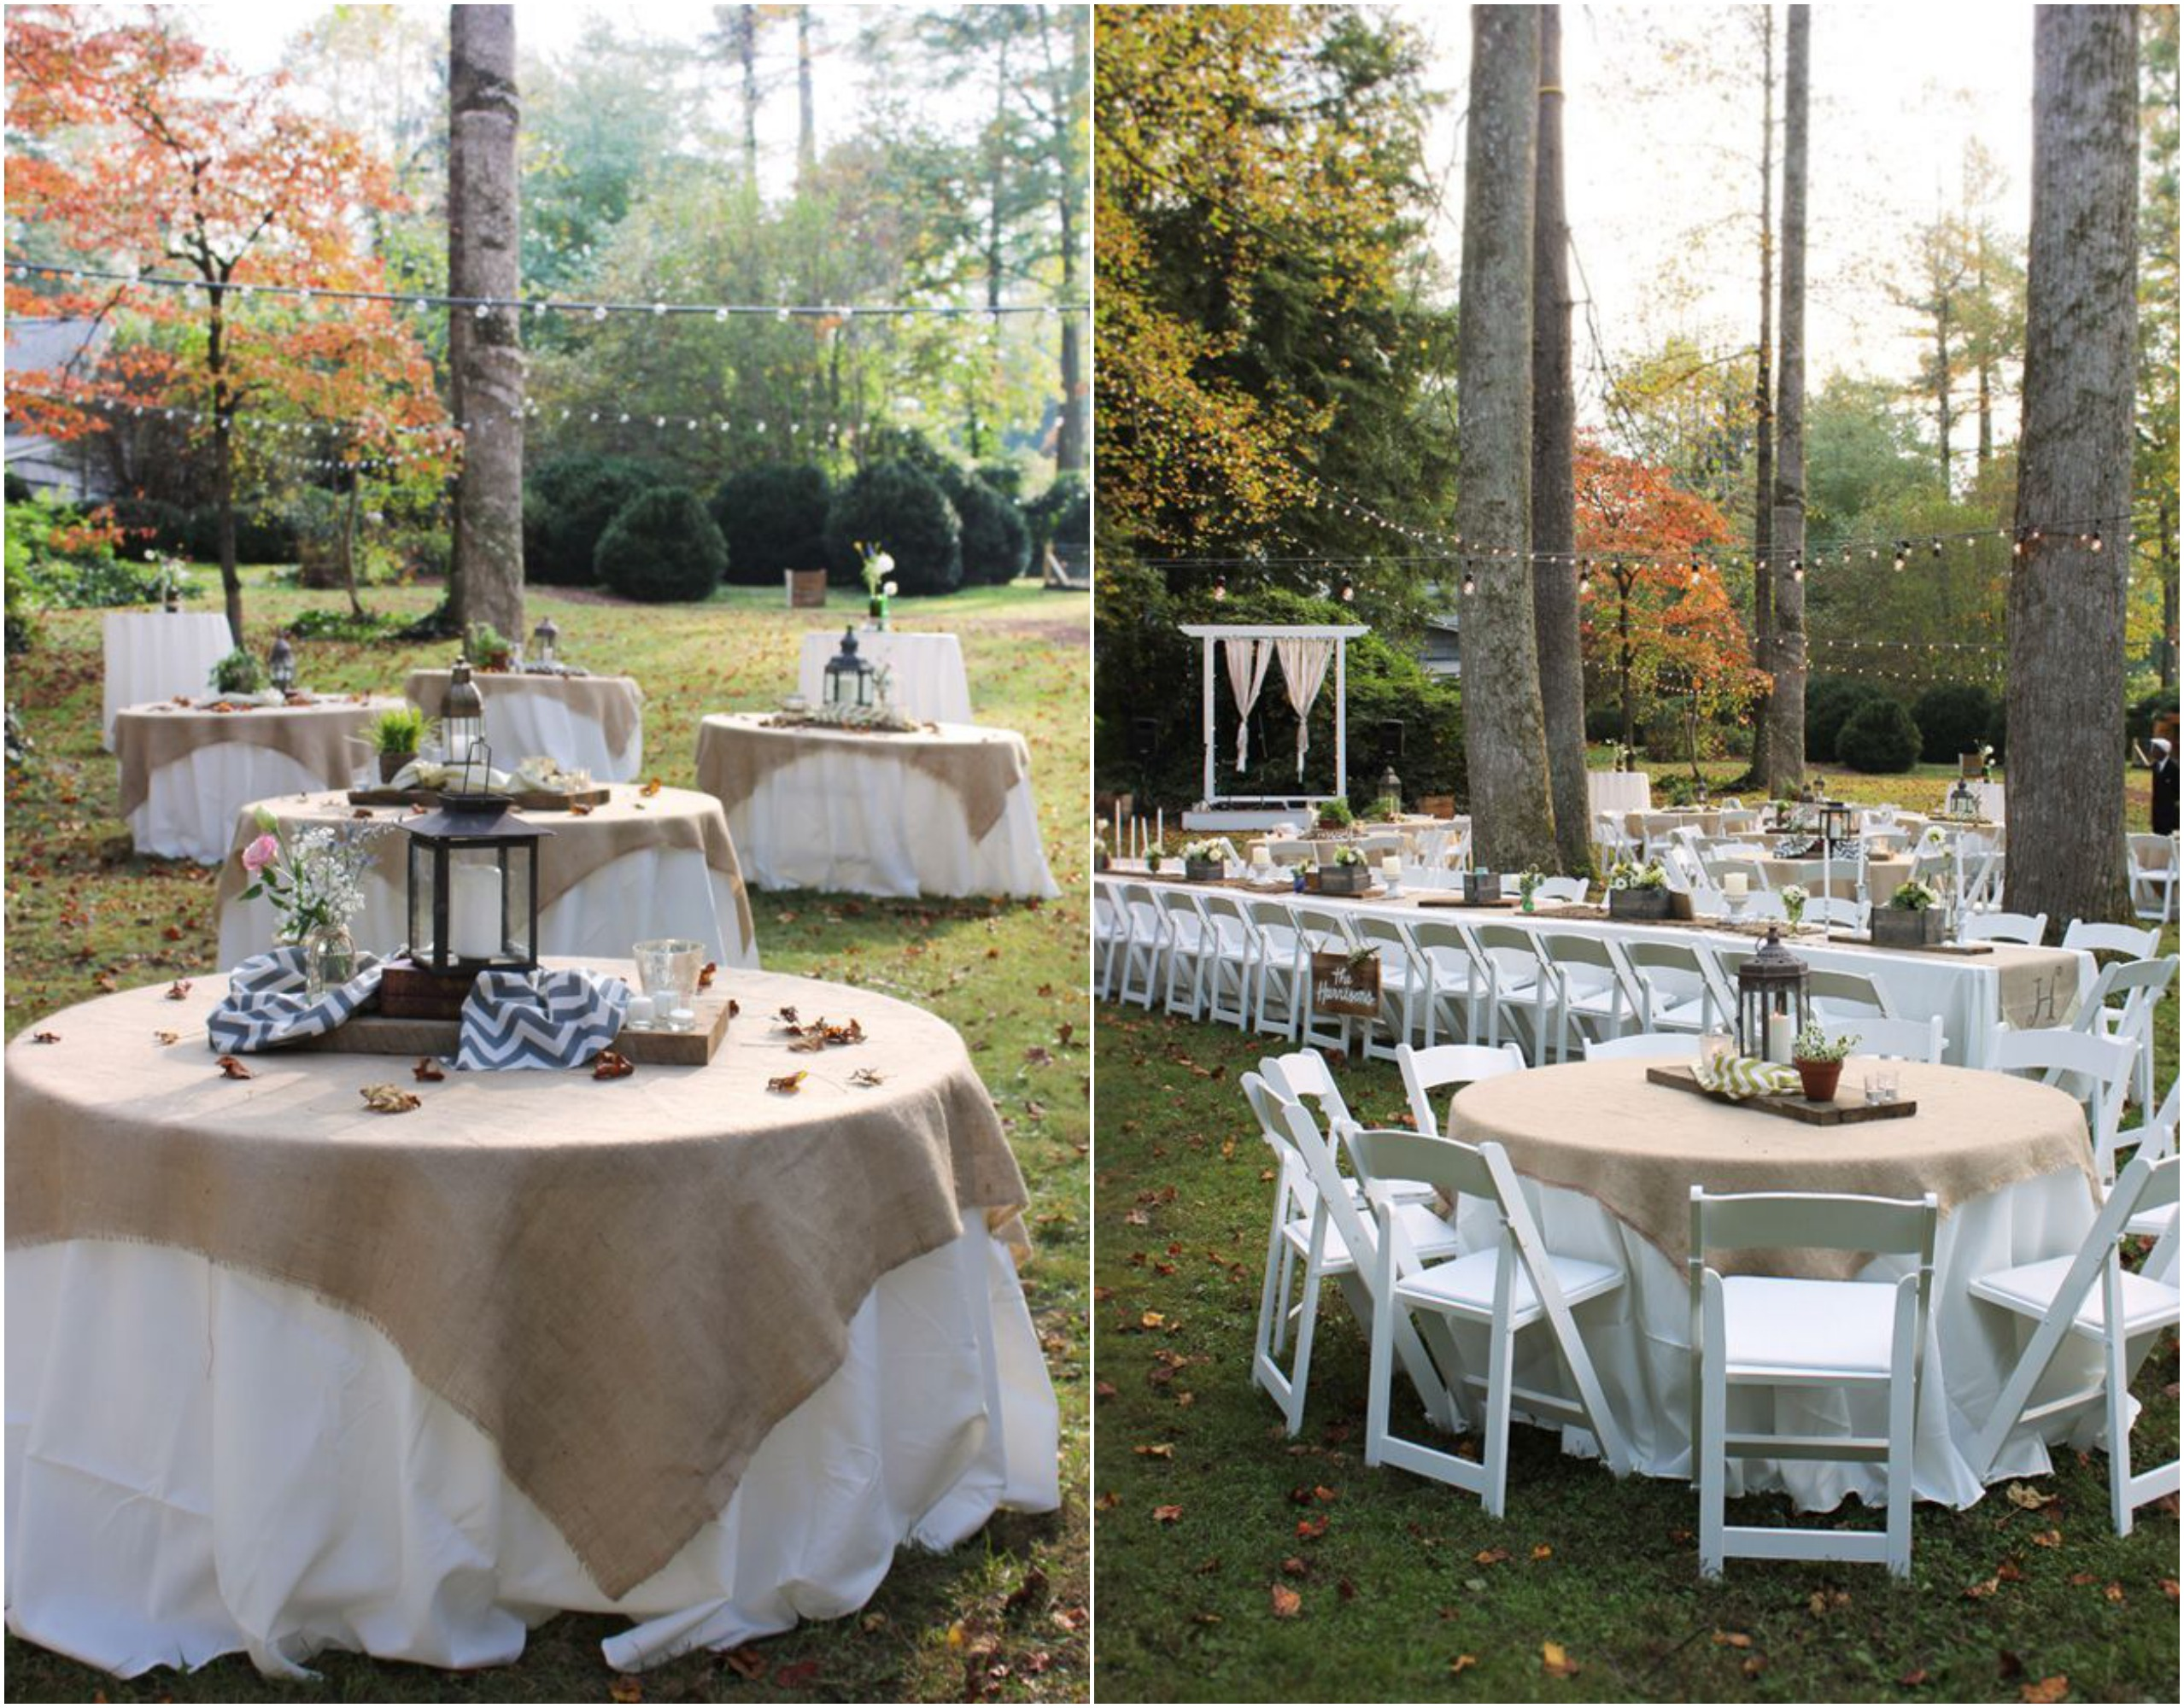 Noteable Expressions: 10 HOT WEDDING TRENDS FOR 2014 on Rustic Backyard Ideas id=75088